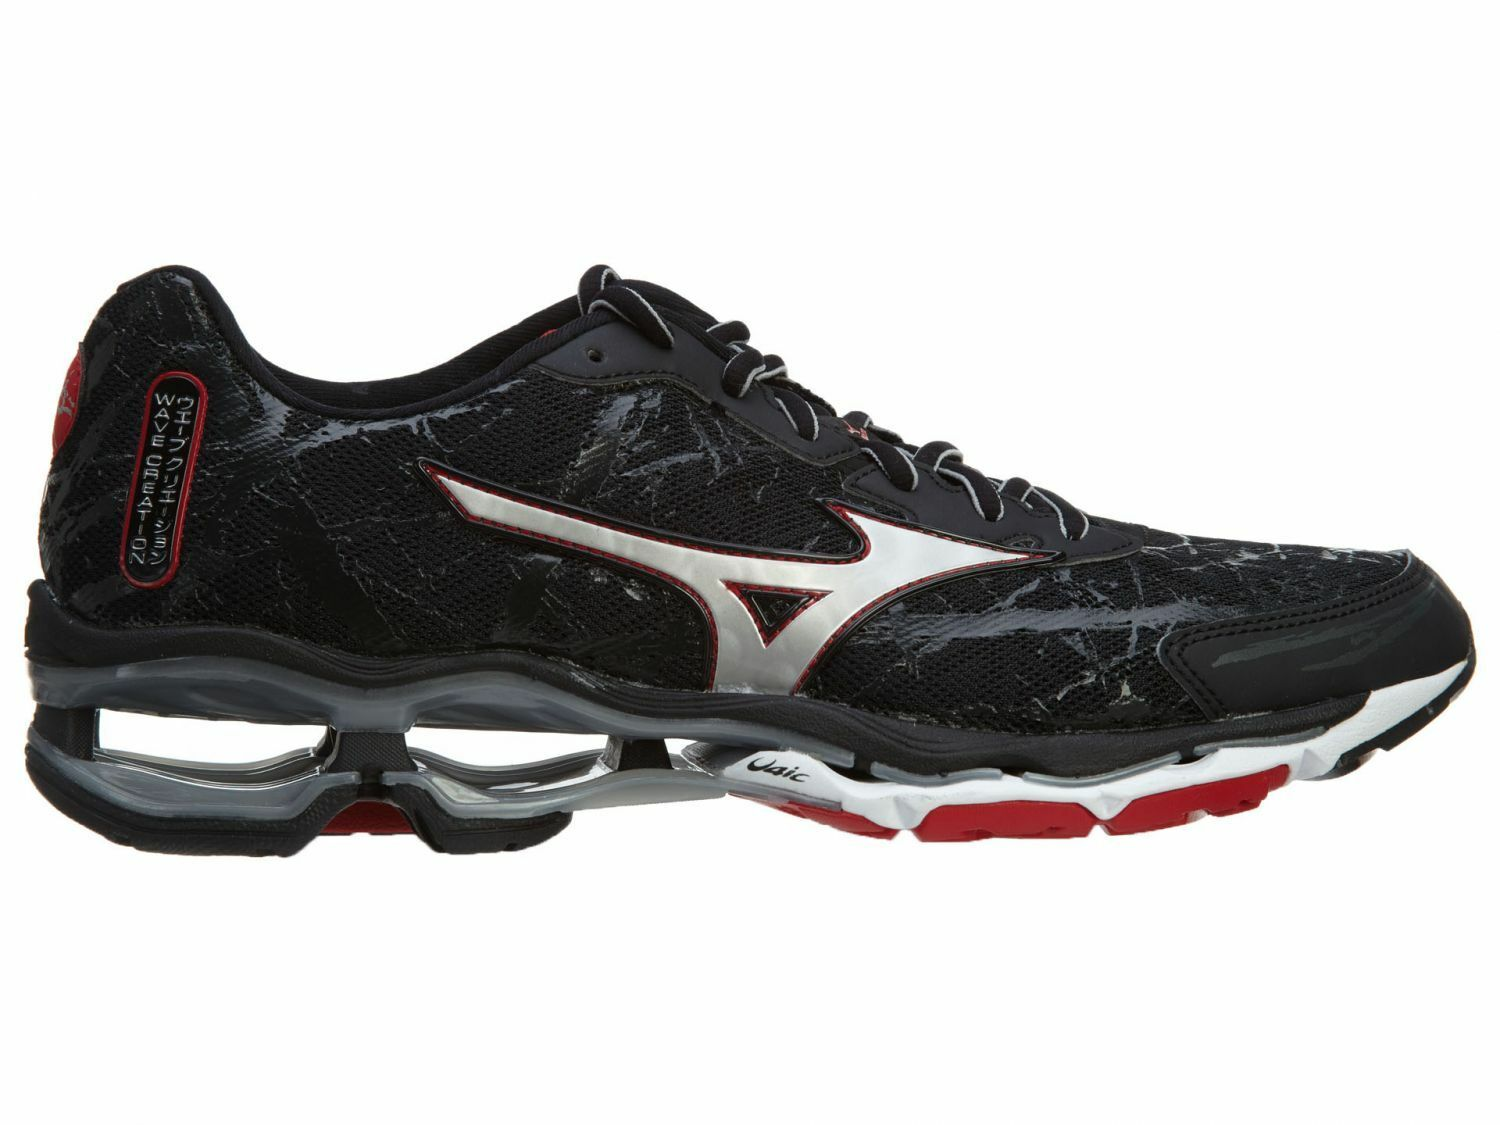 Mizuno Wave Creation 16 Mens 410652-9073 Black Silver Red Running Shoes Size 7.5